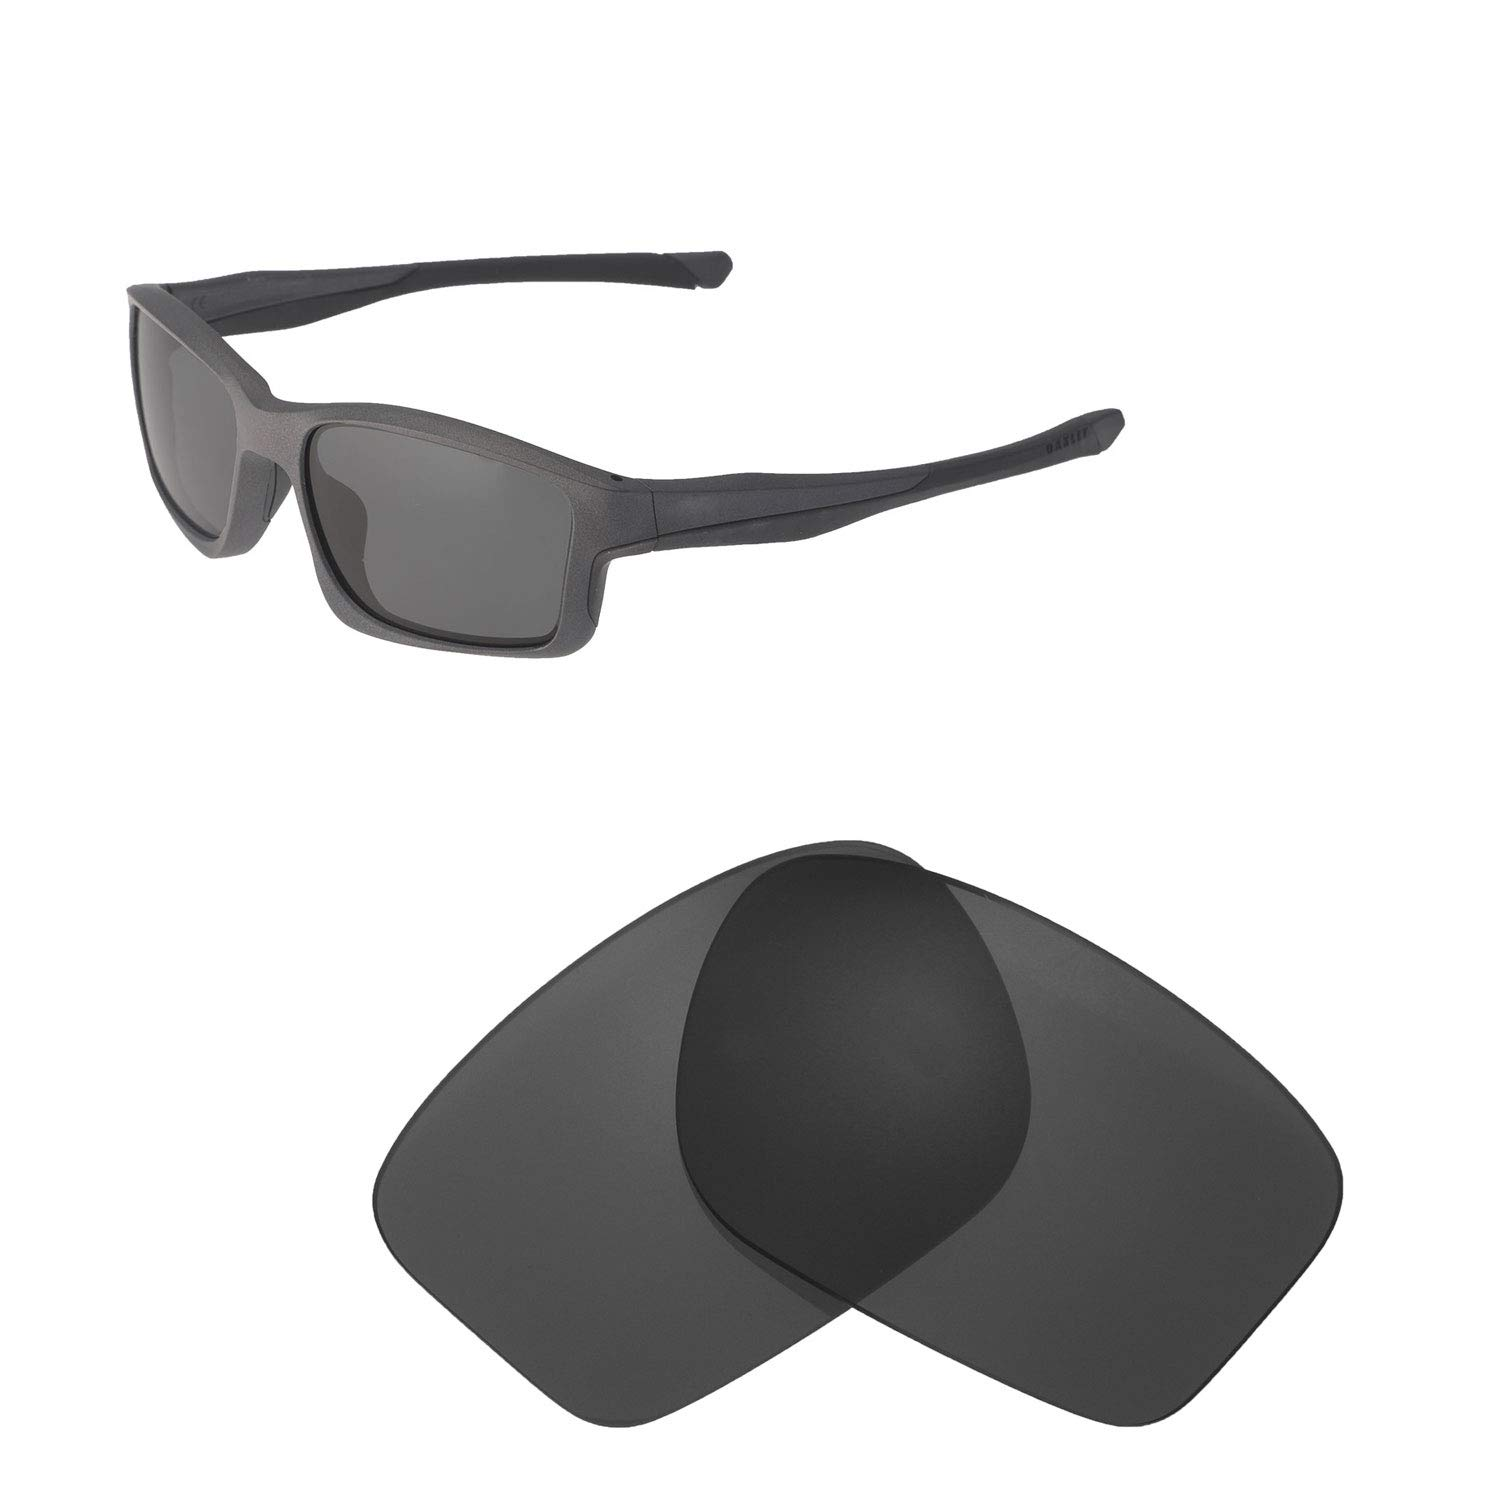 d7838bc5a7 Amazon.com  Walleva Replacement Lenses for Oakley Chainlink Sunglasses -  Multiple Options Available (Black - Polarized)  Clothing